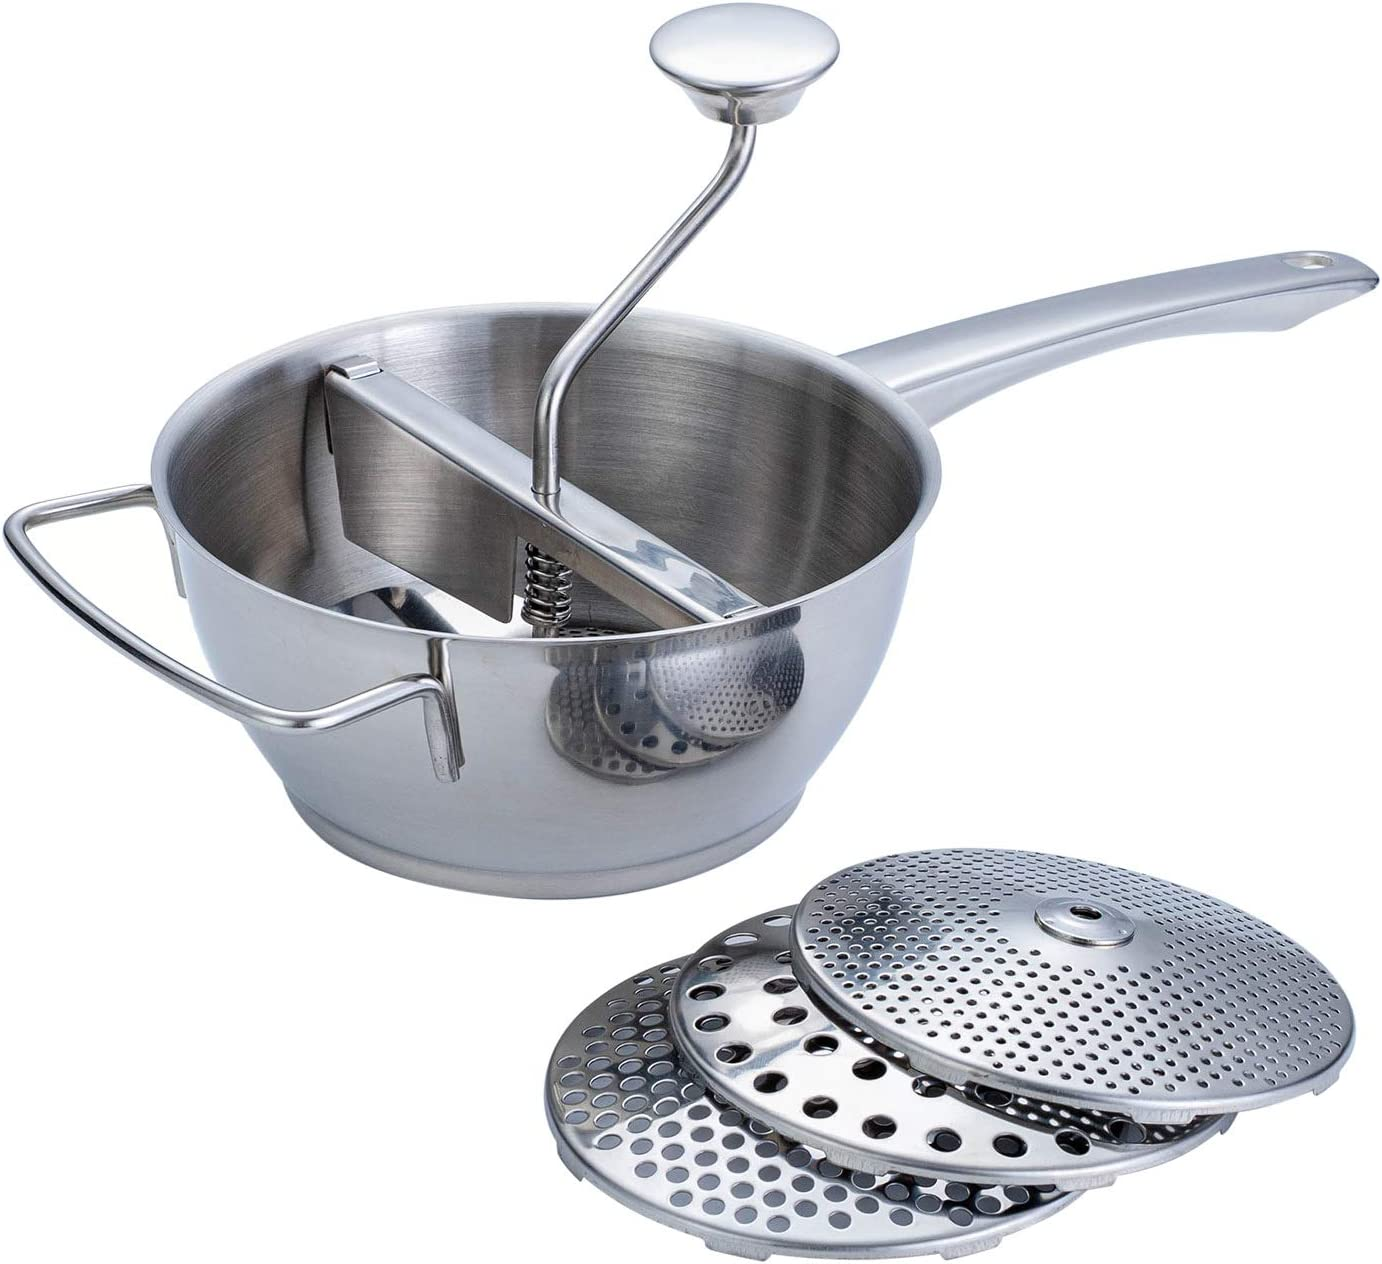 ROYDOM Rotary Food Mill with 4 milling Disks, 18/10 Stainless Steel Hand Crank Manual Grinder for Vegetable Mashed Potato Tomato Applesauce Dishwasher Safe